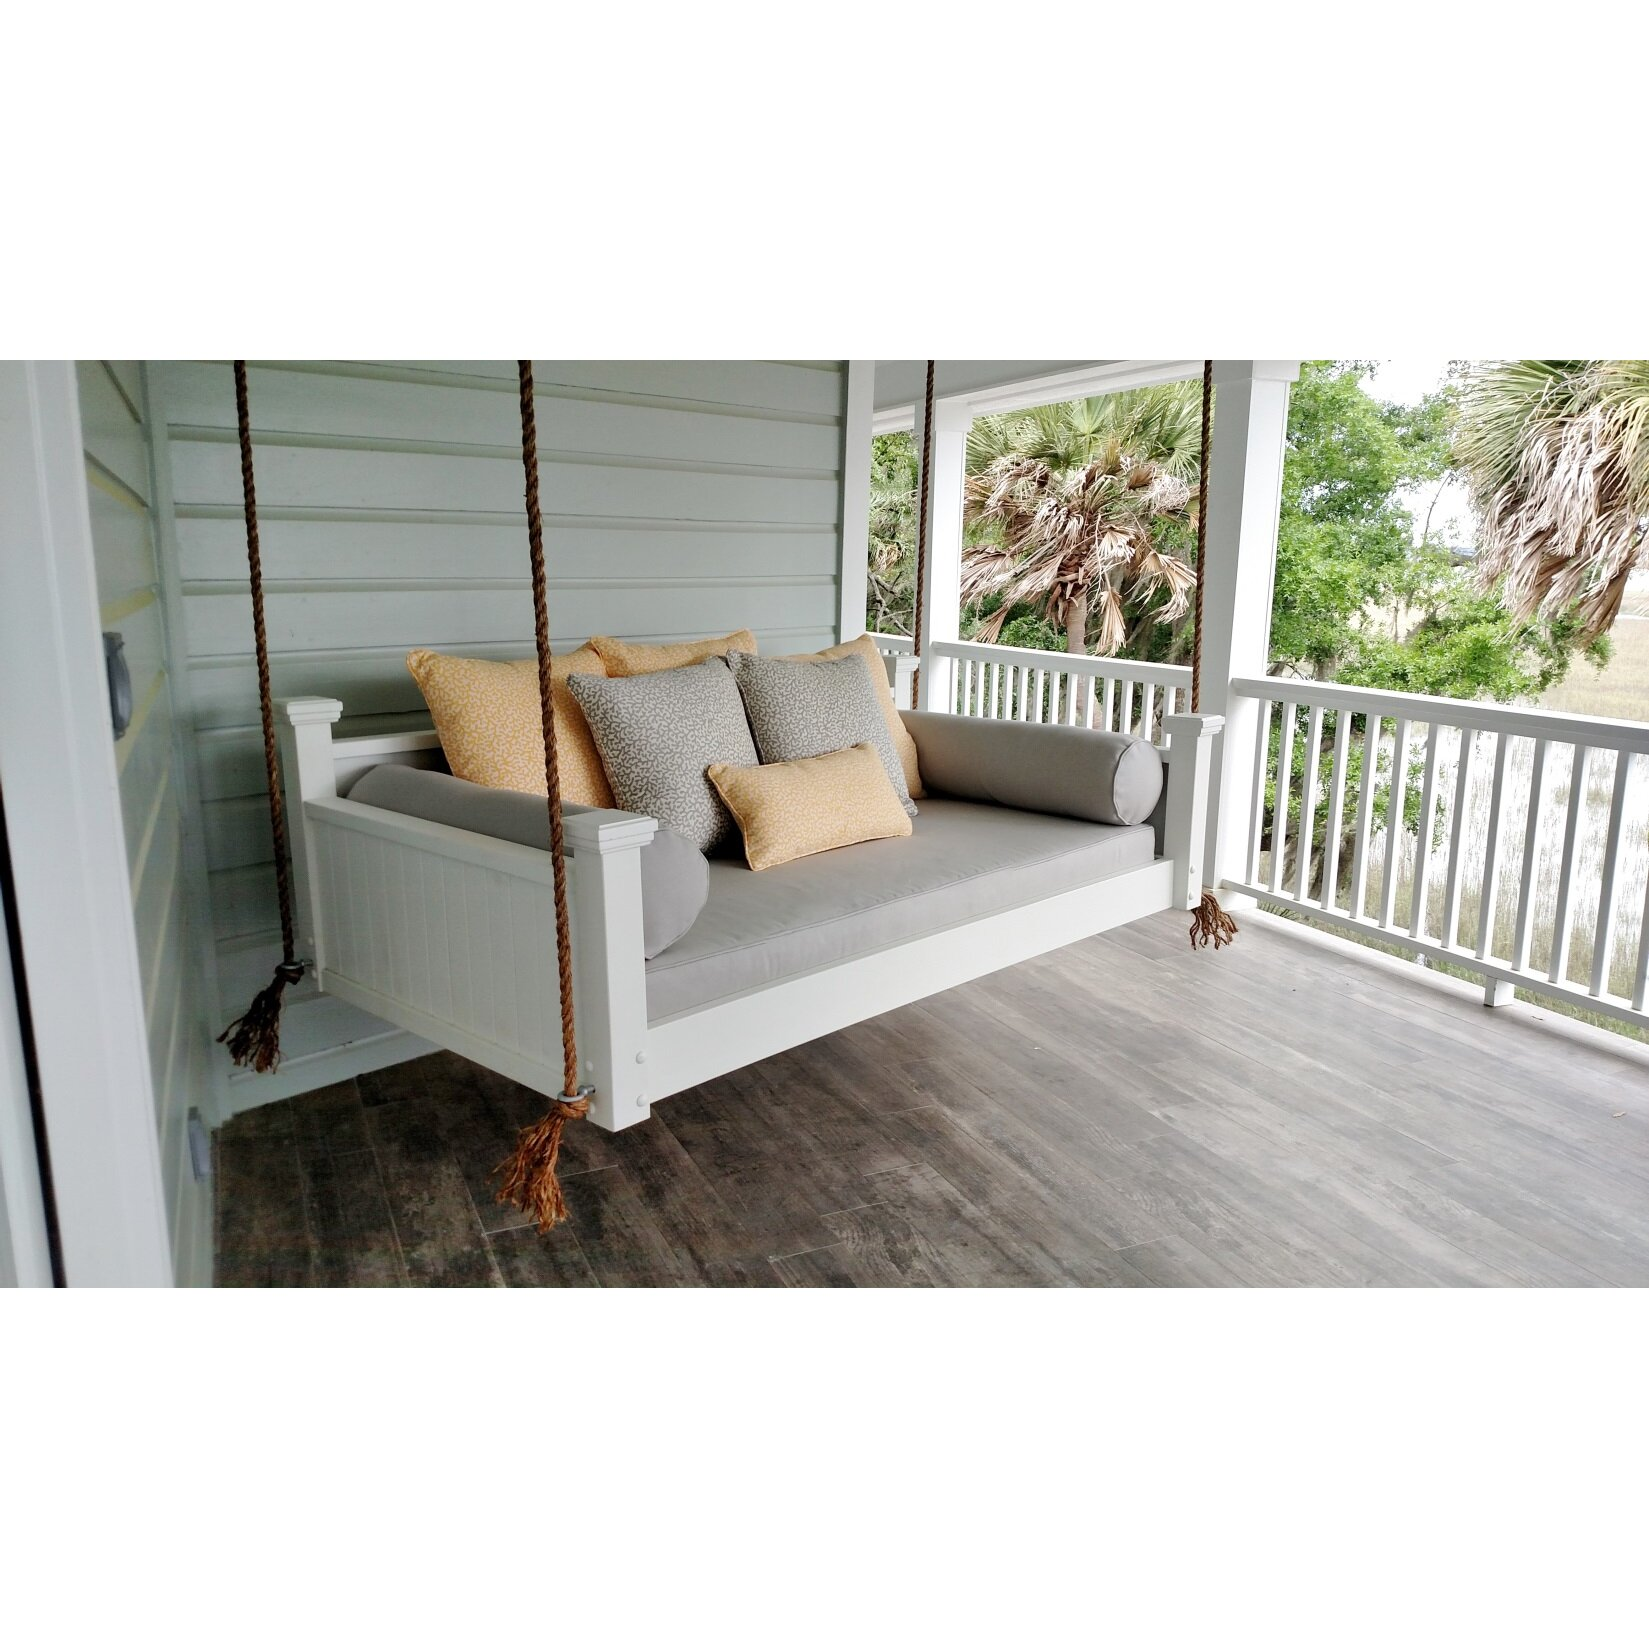 Southern Savannah Porch Swing : Wayfair